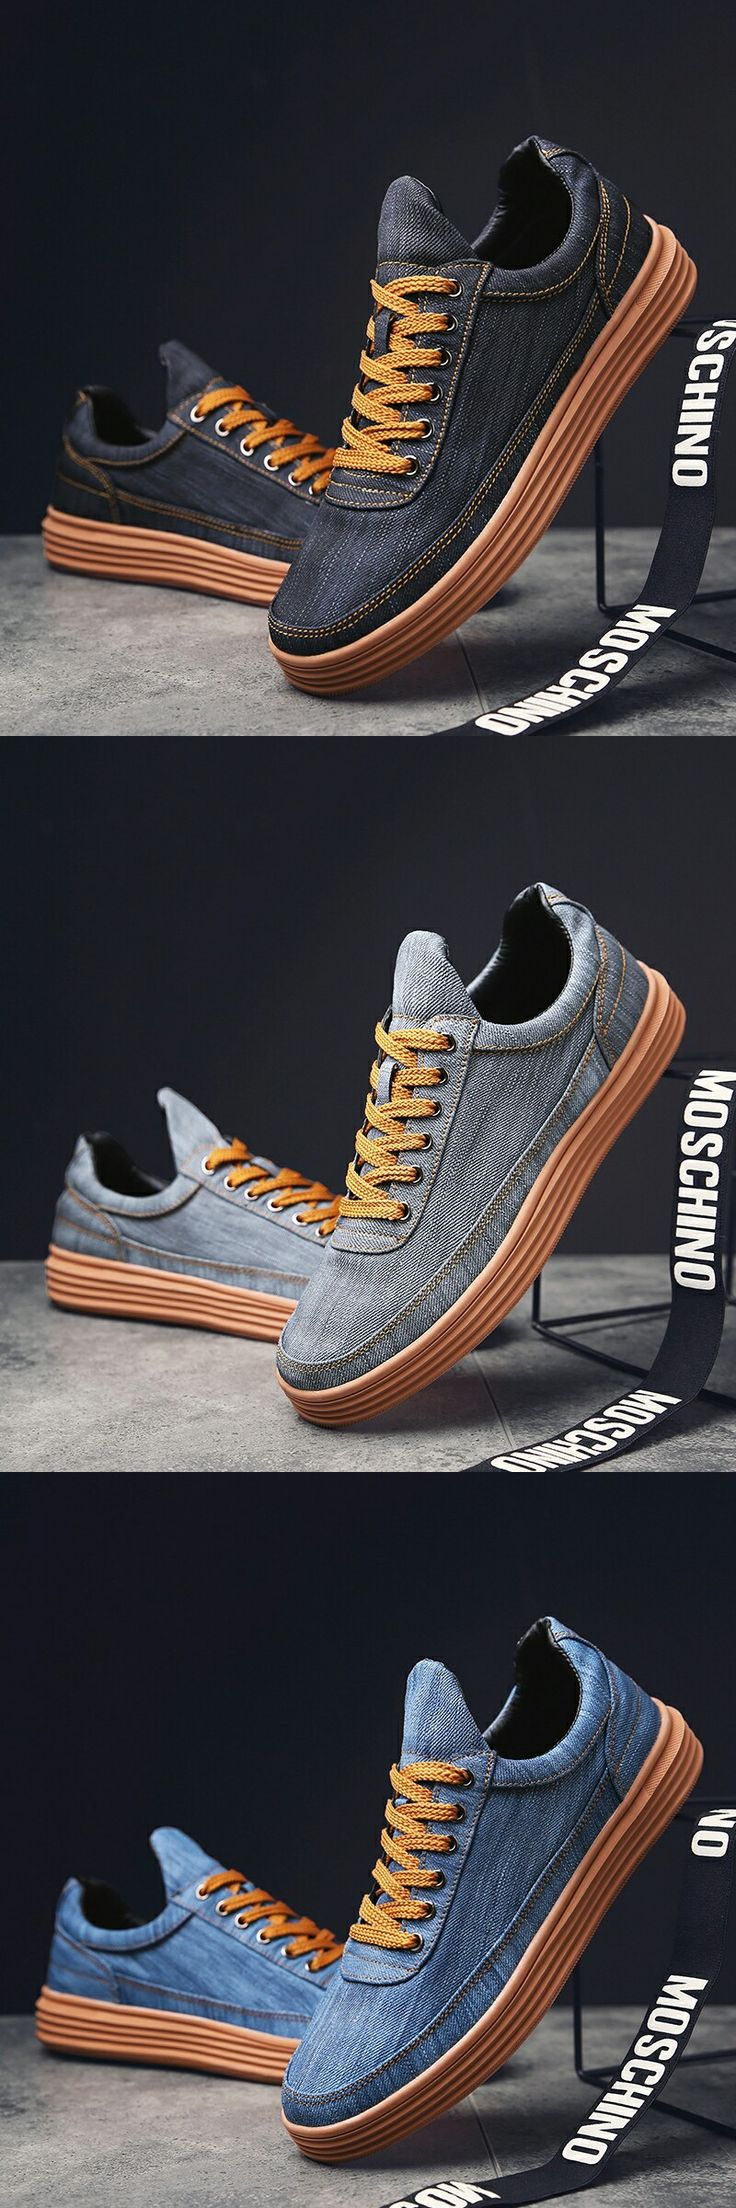 US $27.2<Click to buy> Prelesty New Jeans Denim Mens Pointed Toe Dress Shoes Footwear